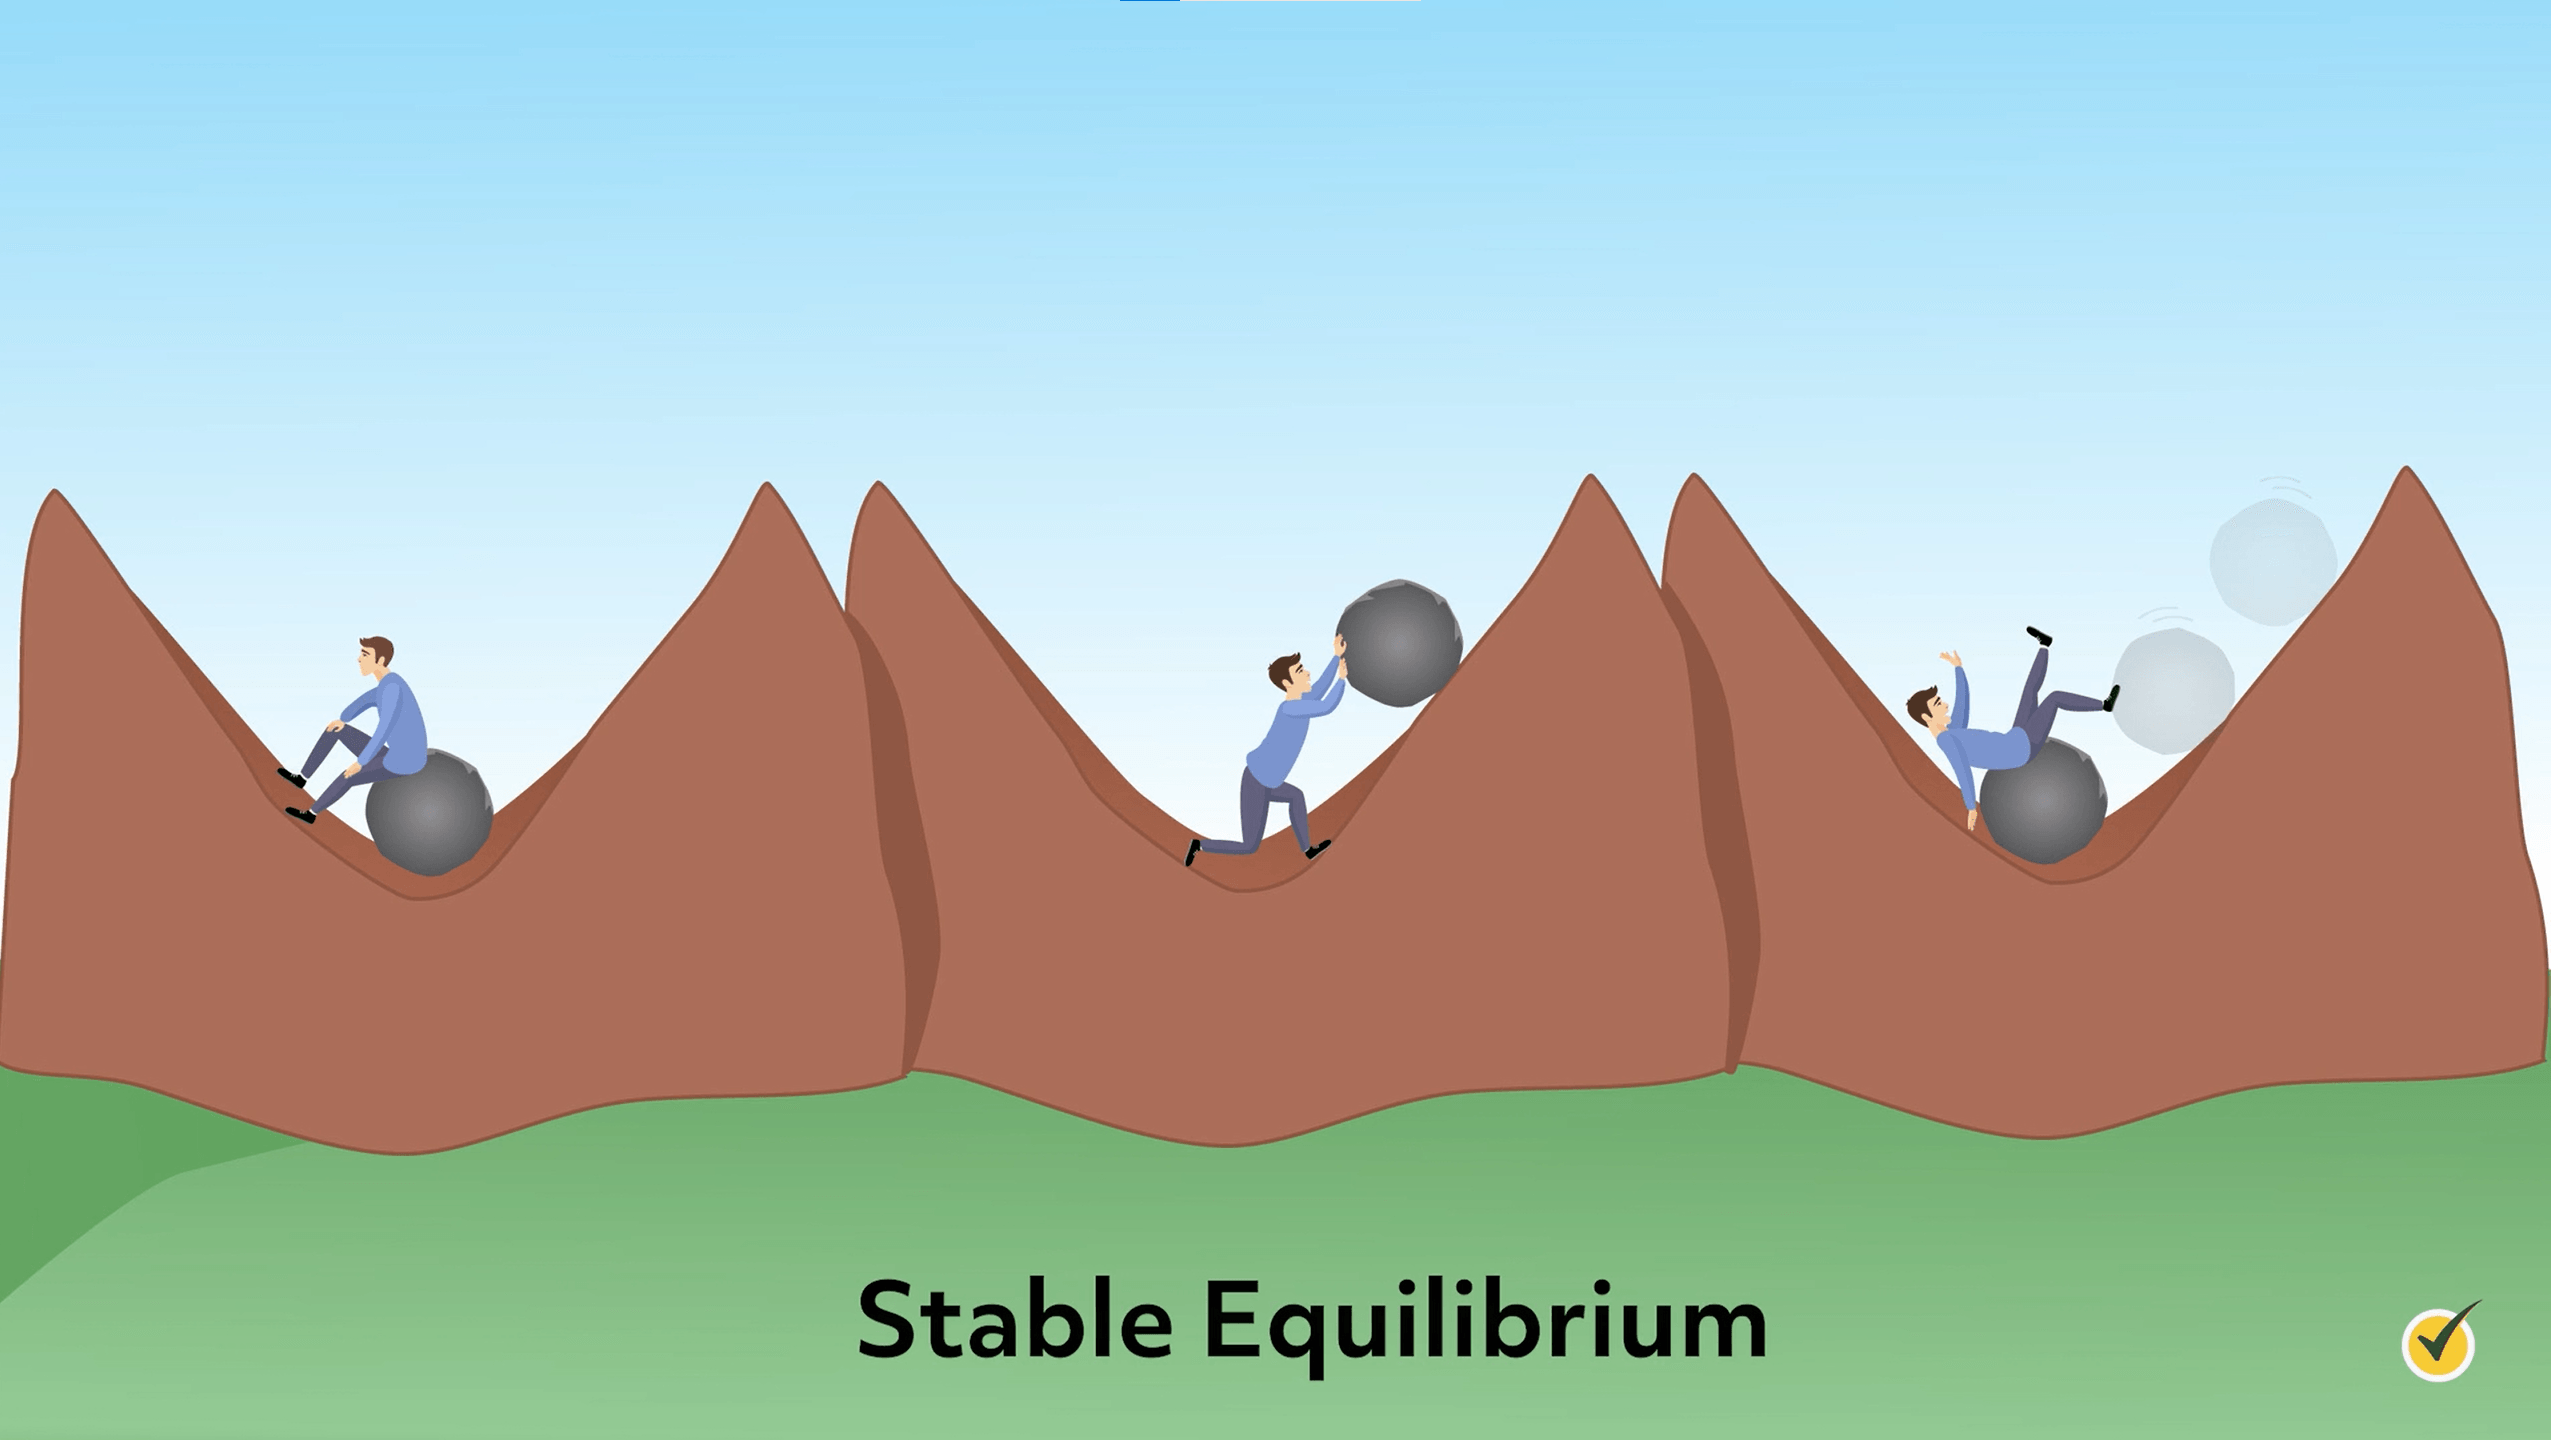 Image of a person demonstrating a stable equilibrium. There is a rock in the center of a cradle shaped structure, and it cannot roll out of the area. It always goes back to the middle no matter how hard the man pushes.